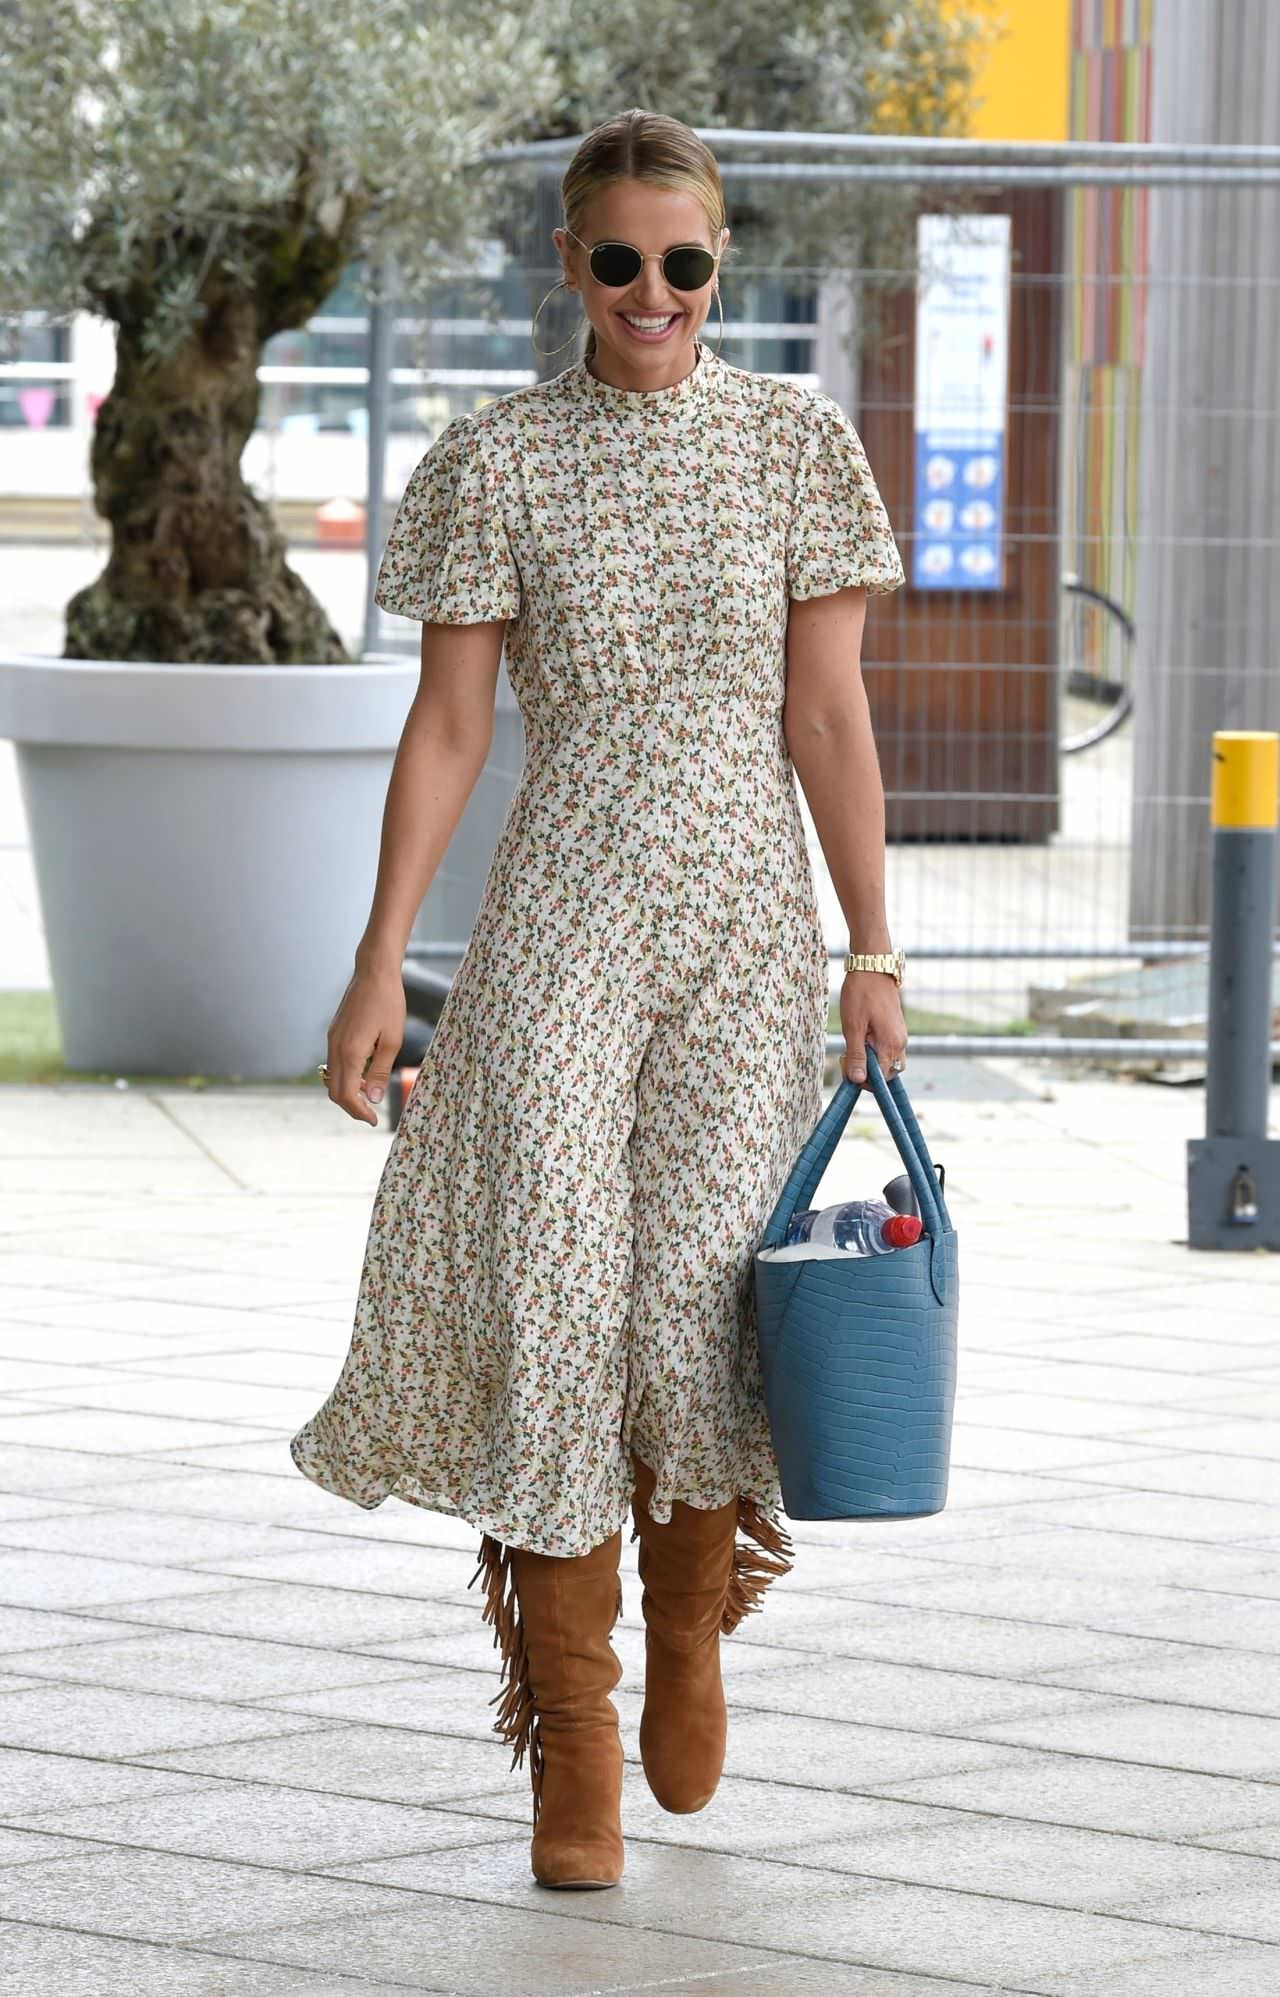 Vogue Williams Steps Out in a Floral Print Dress in Leeds